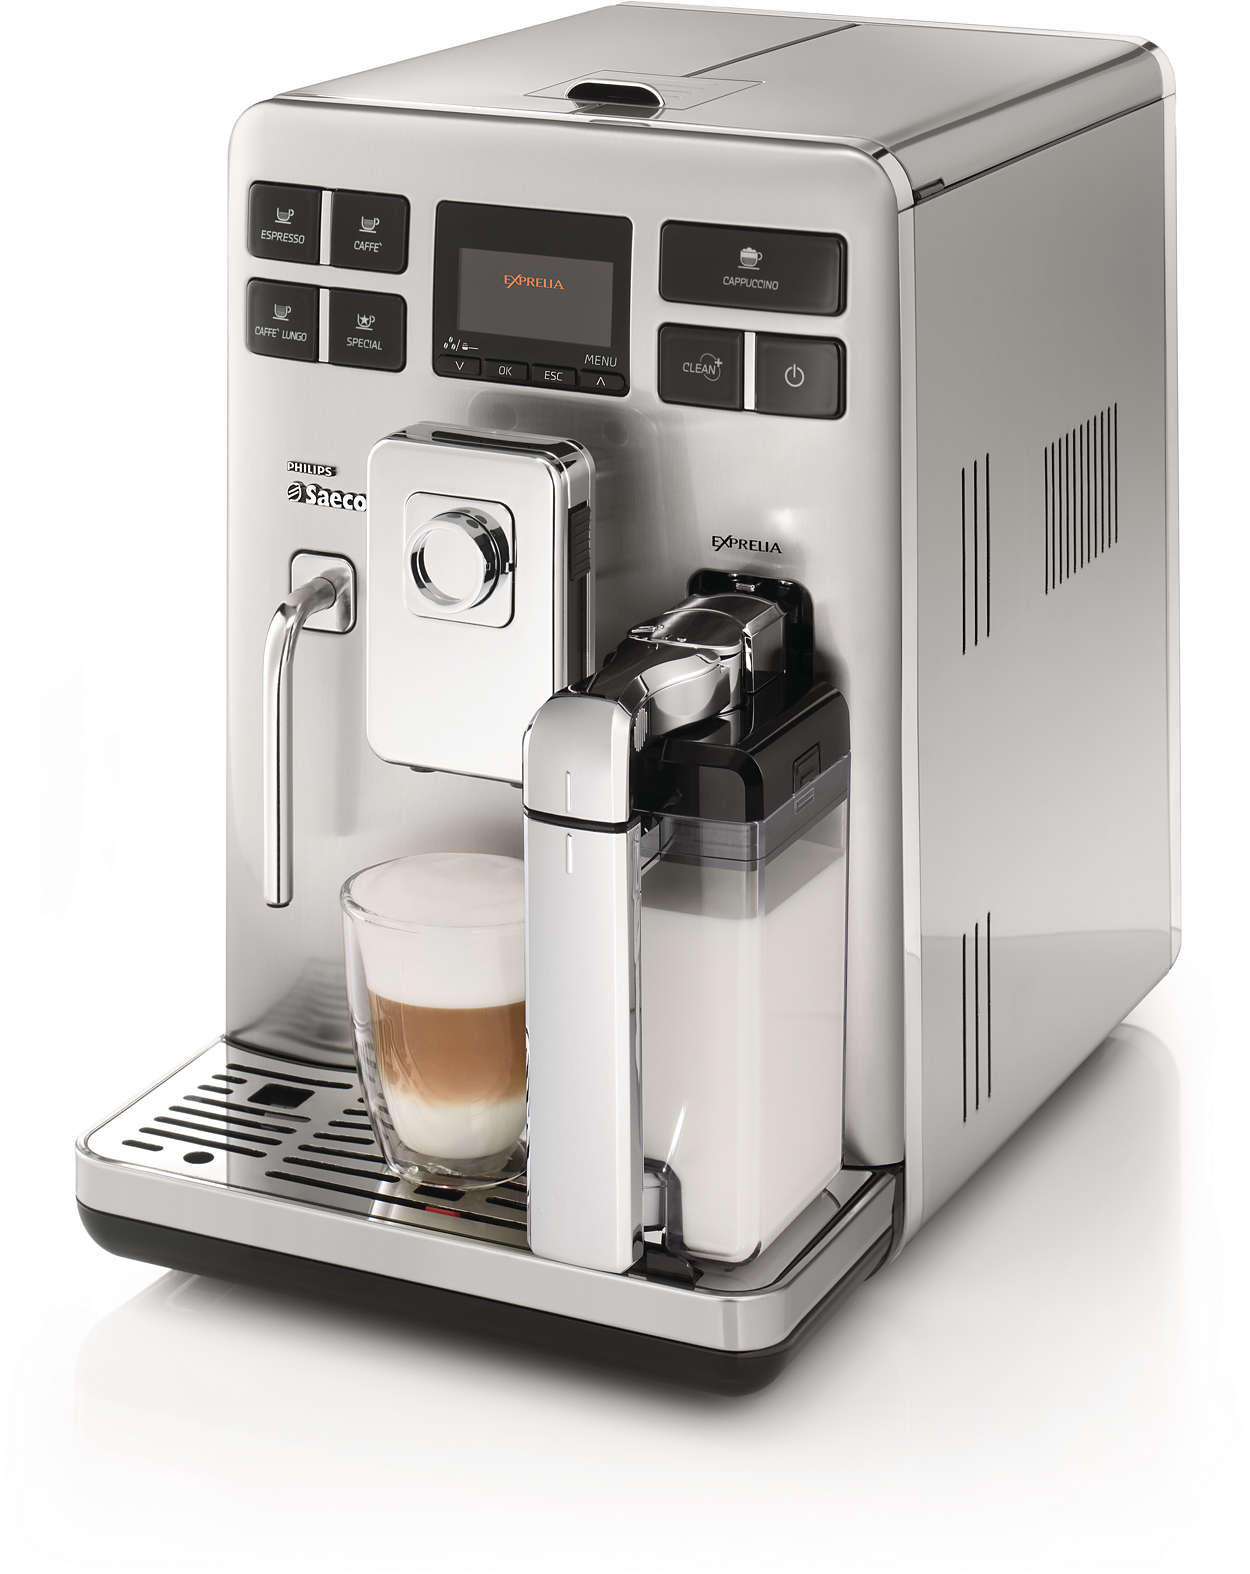 Espresso and cappuccino at a single touch